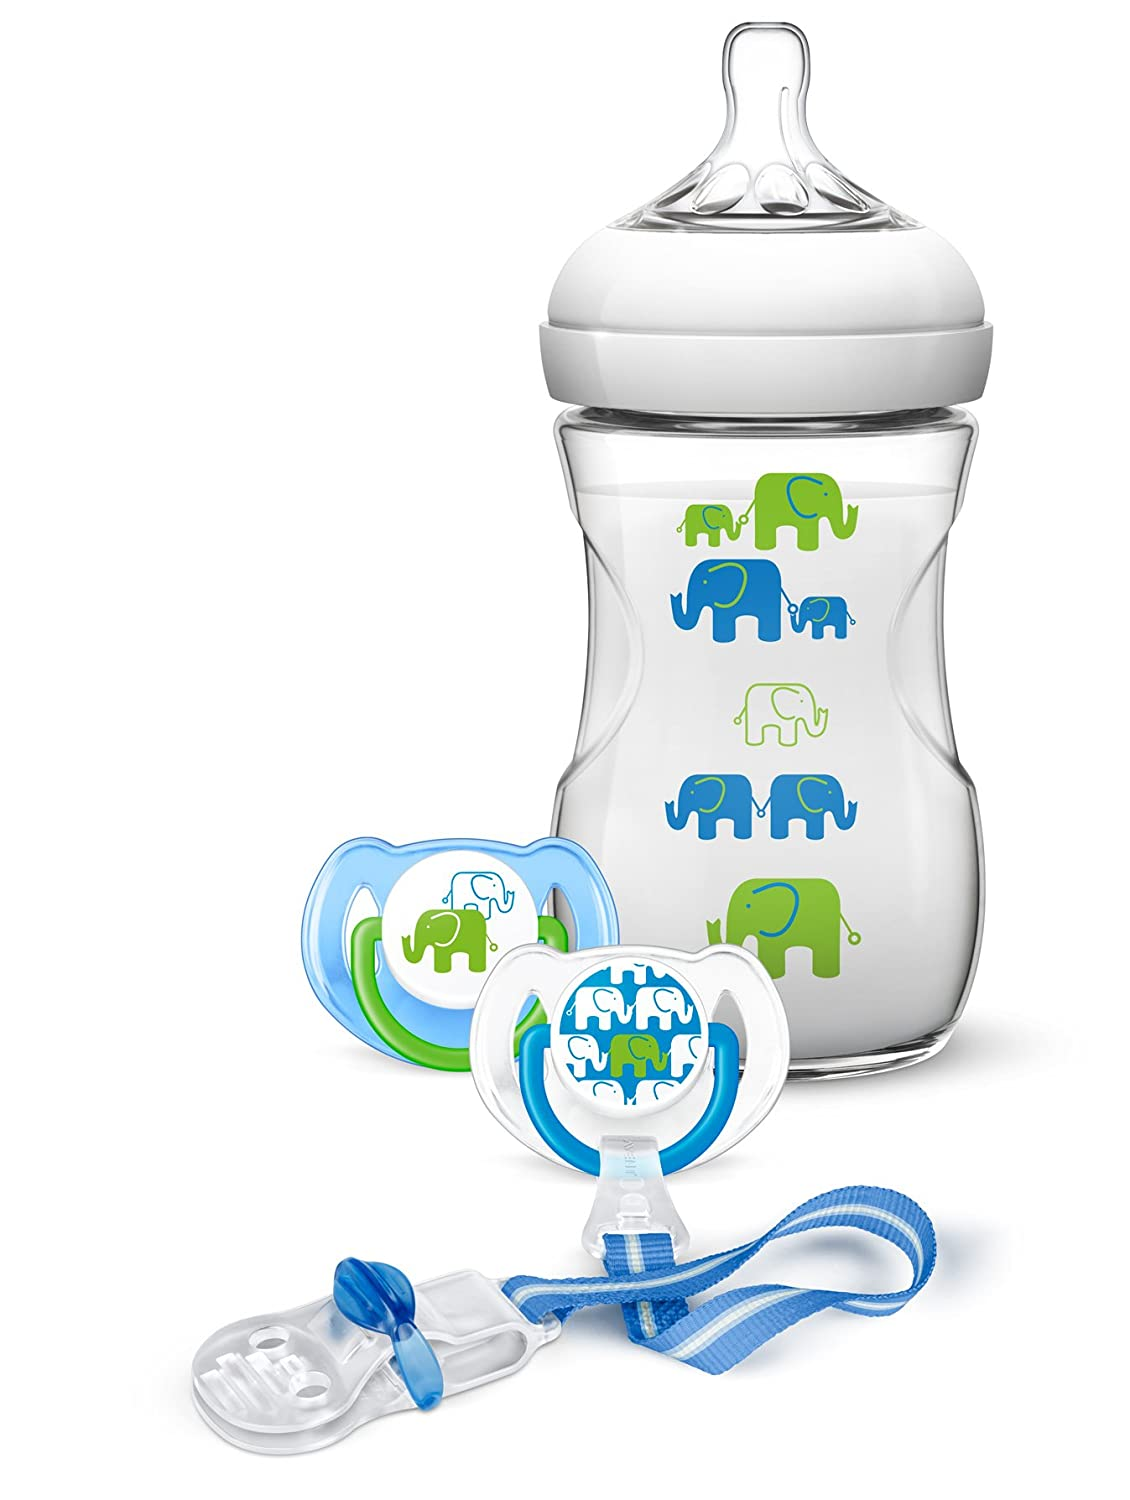 Philips Avent–Gift Set, with 1Natural Baby Bottle 260ml, 2Soothers for 6–18Months, 1Pacifier Clip Blue Elephants Philips Avent-Gift Set SCD627/01